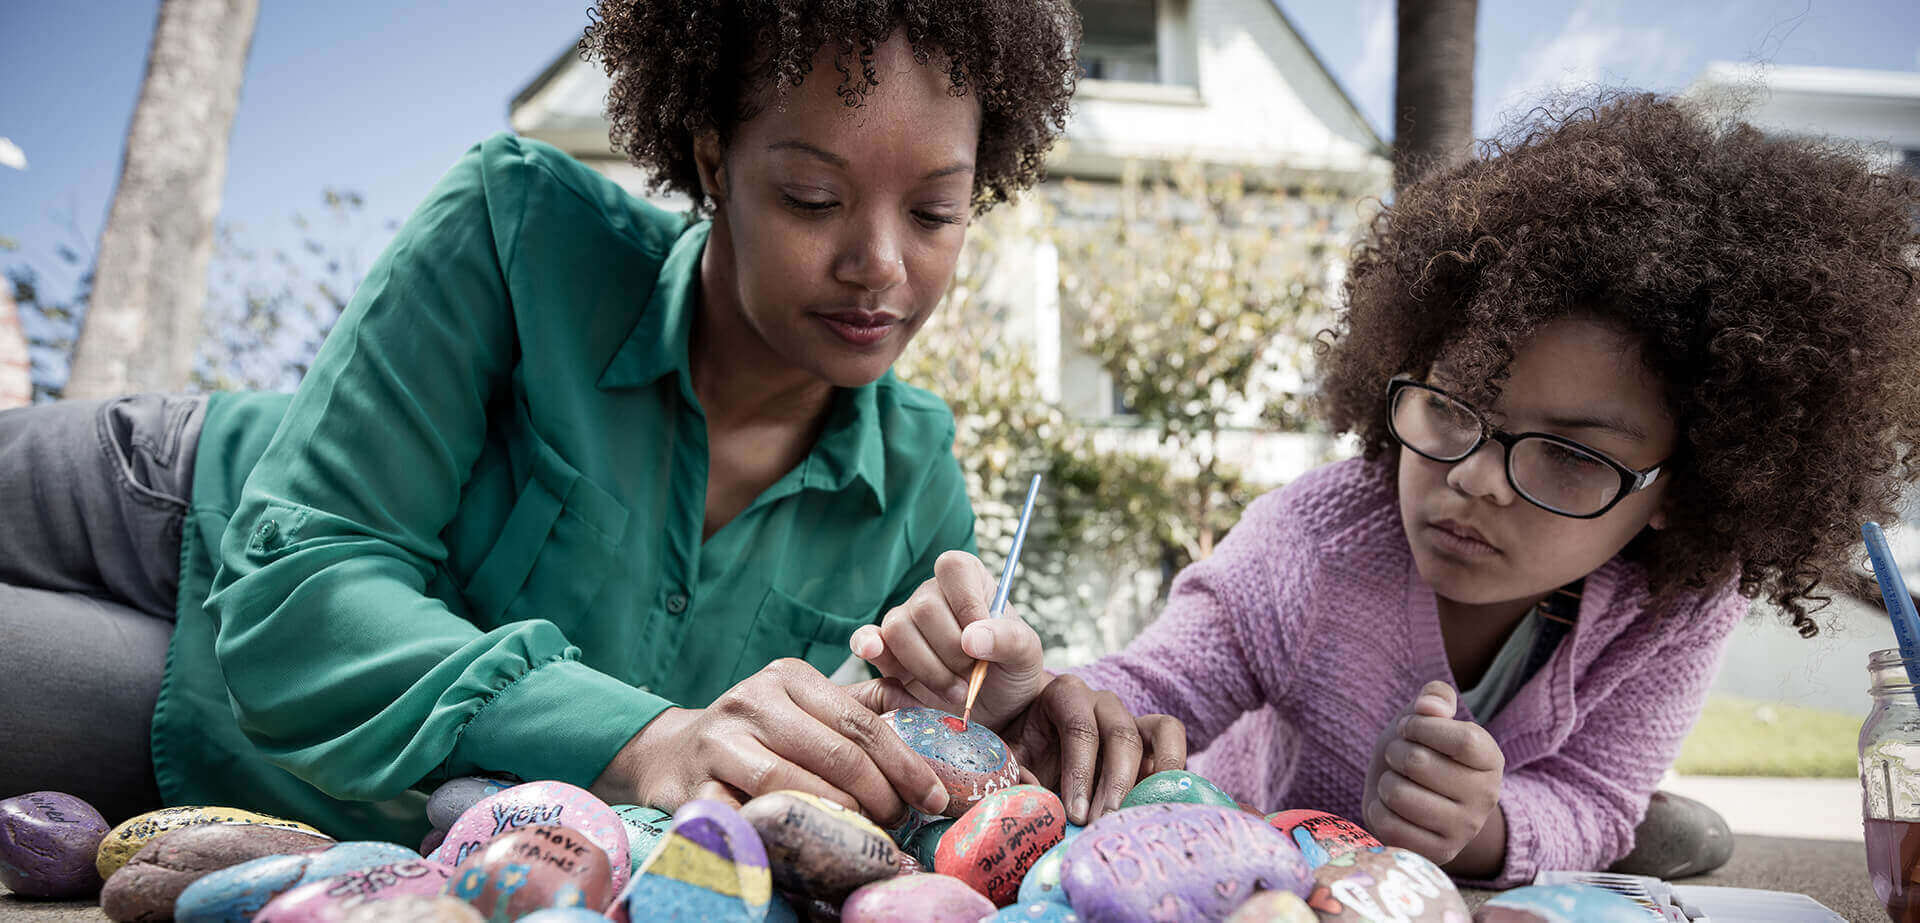 african american mother and young daughter in their yard painting rocks